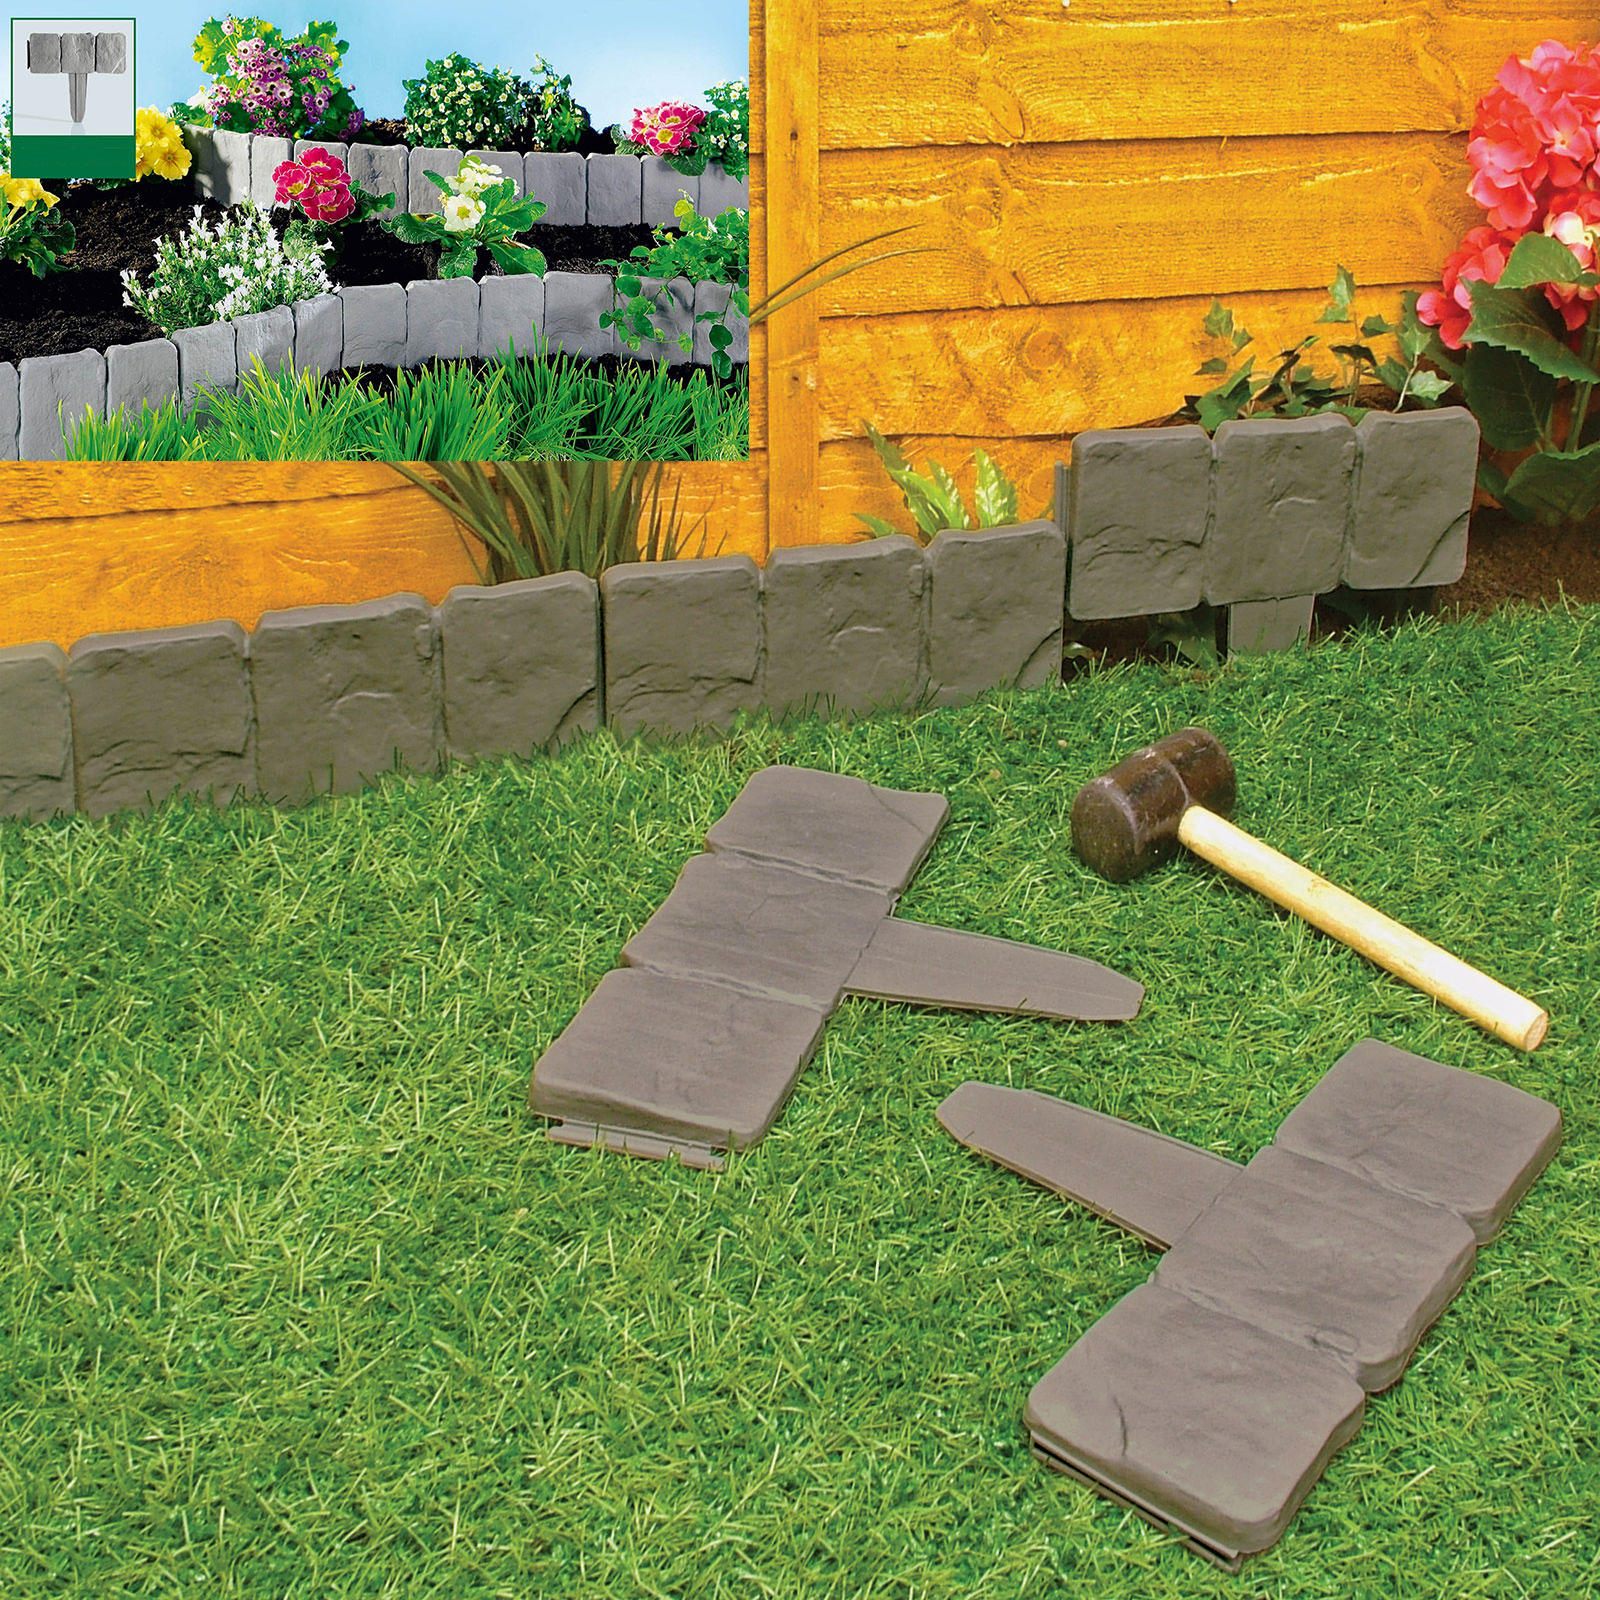 Garden Lawn Edging Cobble Stone Plastic Plant Border 8ft 24m